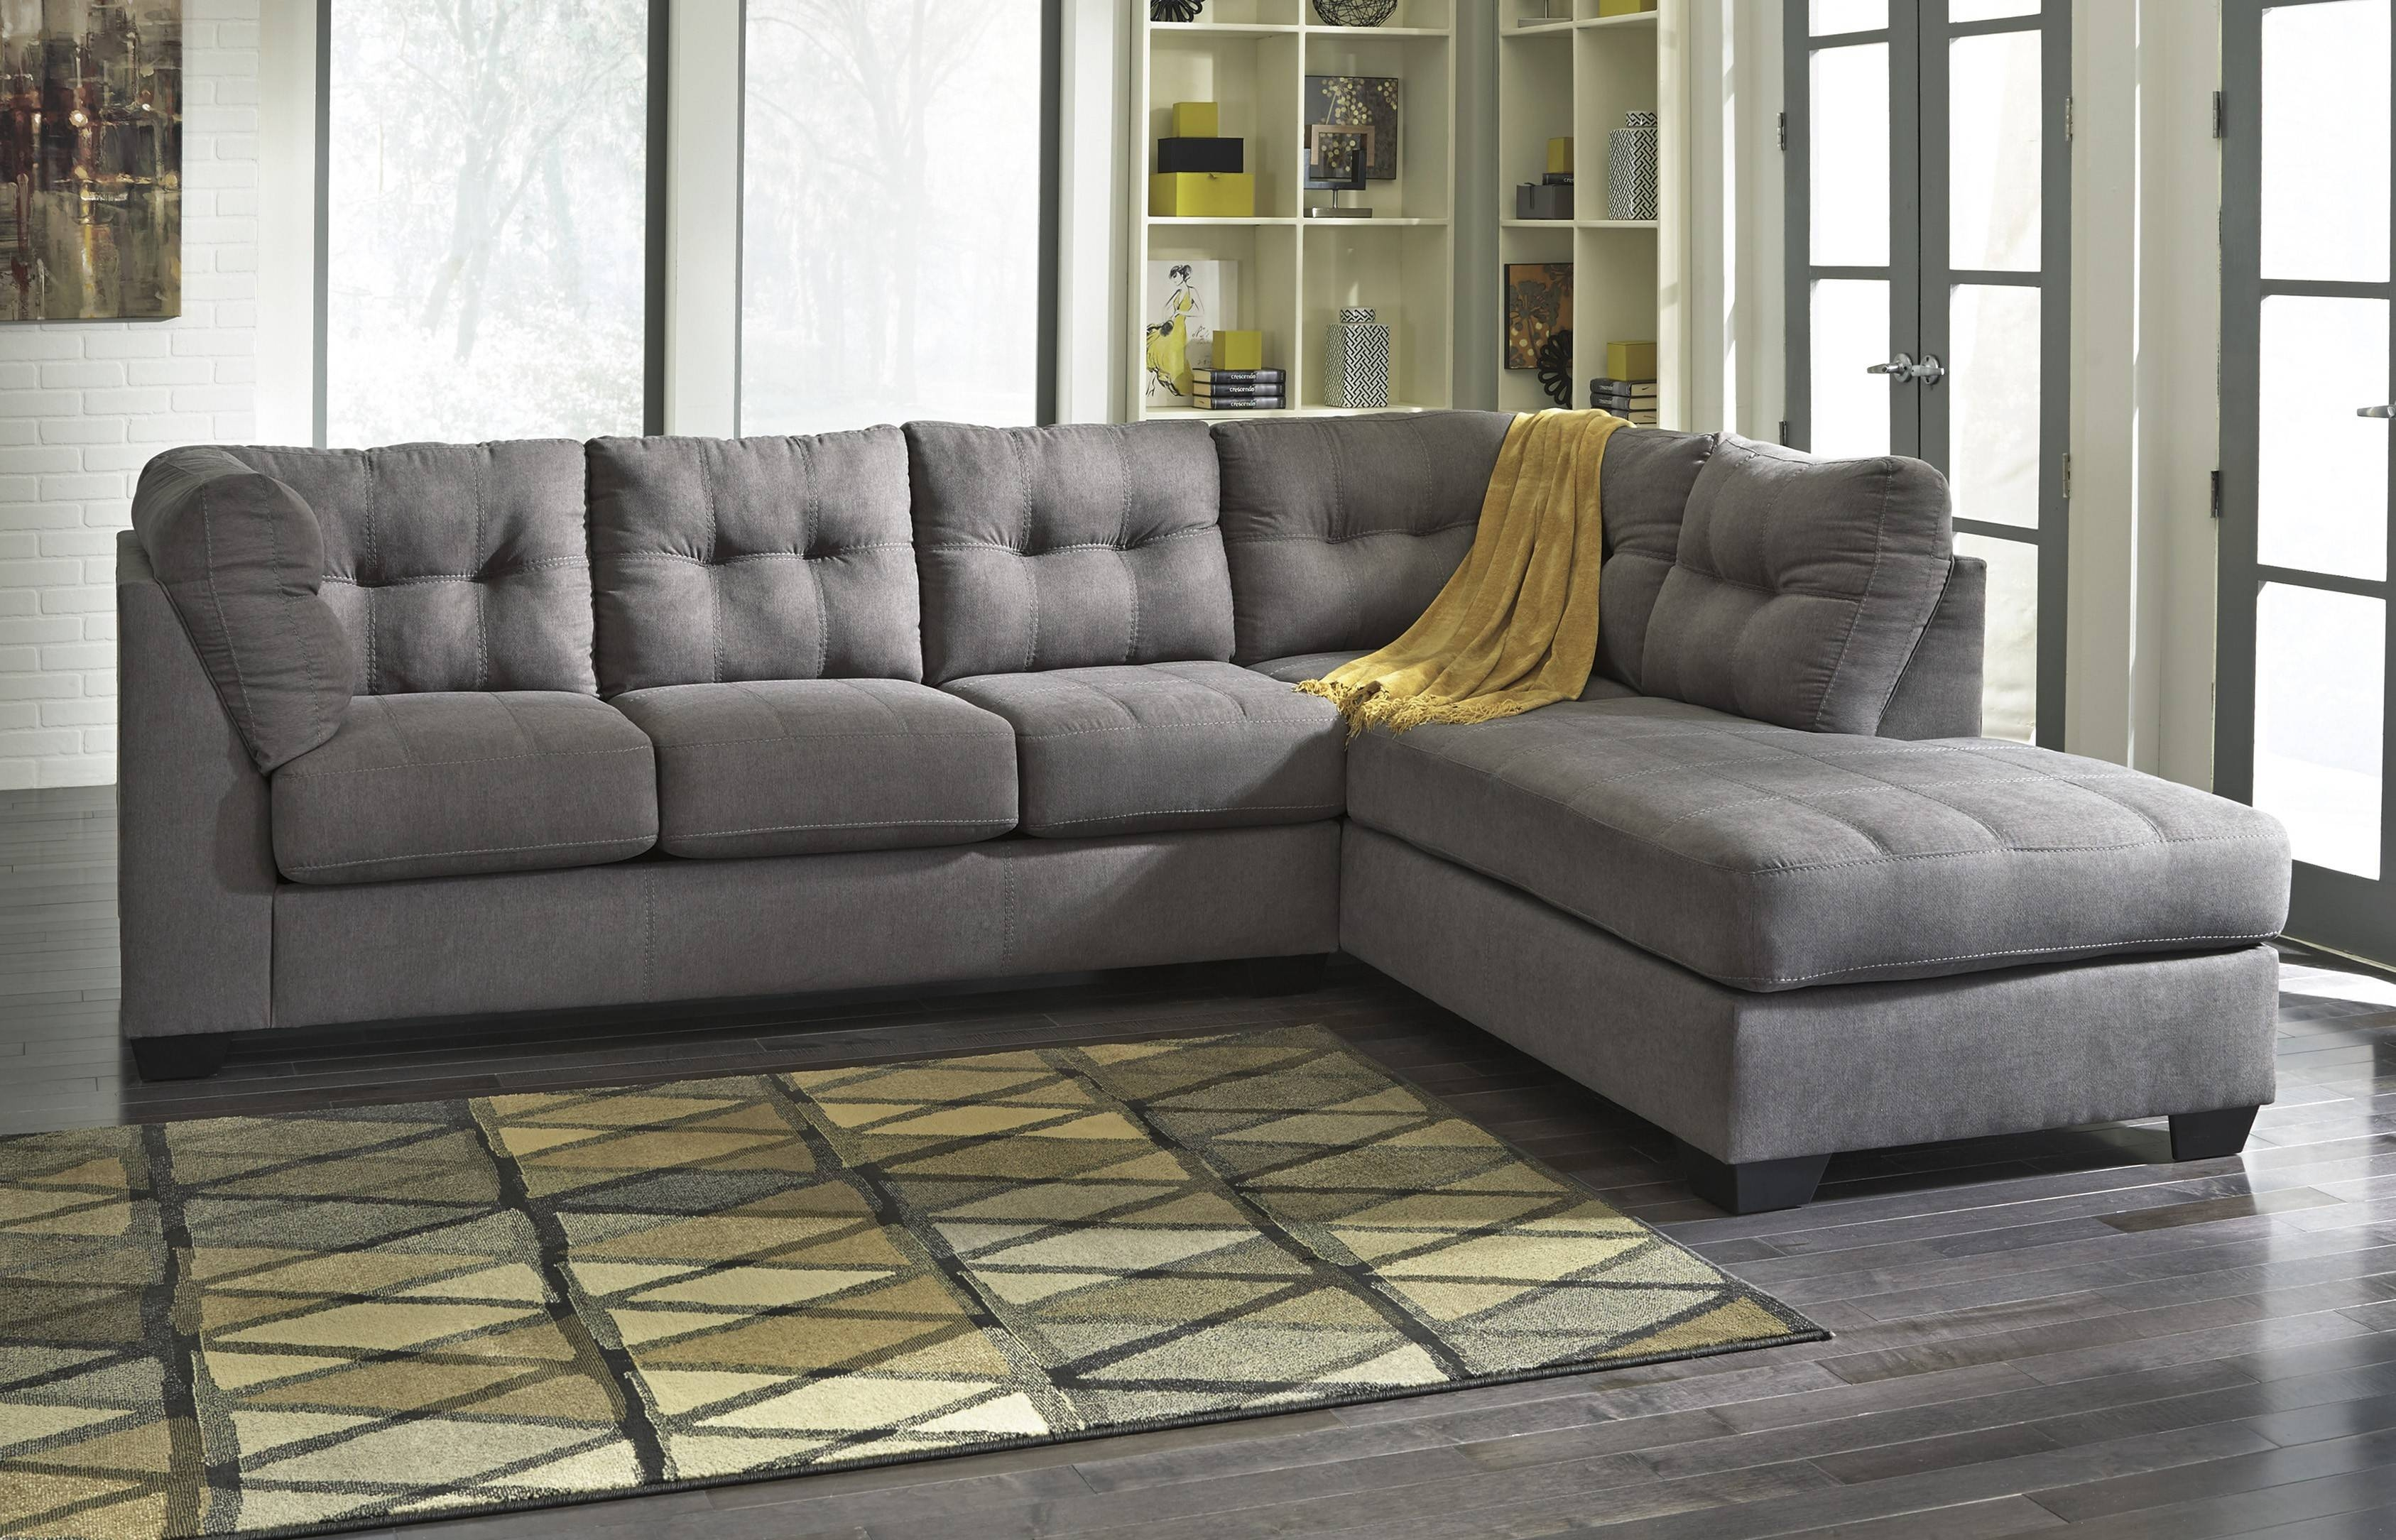 Sofas Center : Ashley Furniture Tufted Sofa Elegant Living Room Within Ashley Tufted Sofa (View 11 of 30)